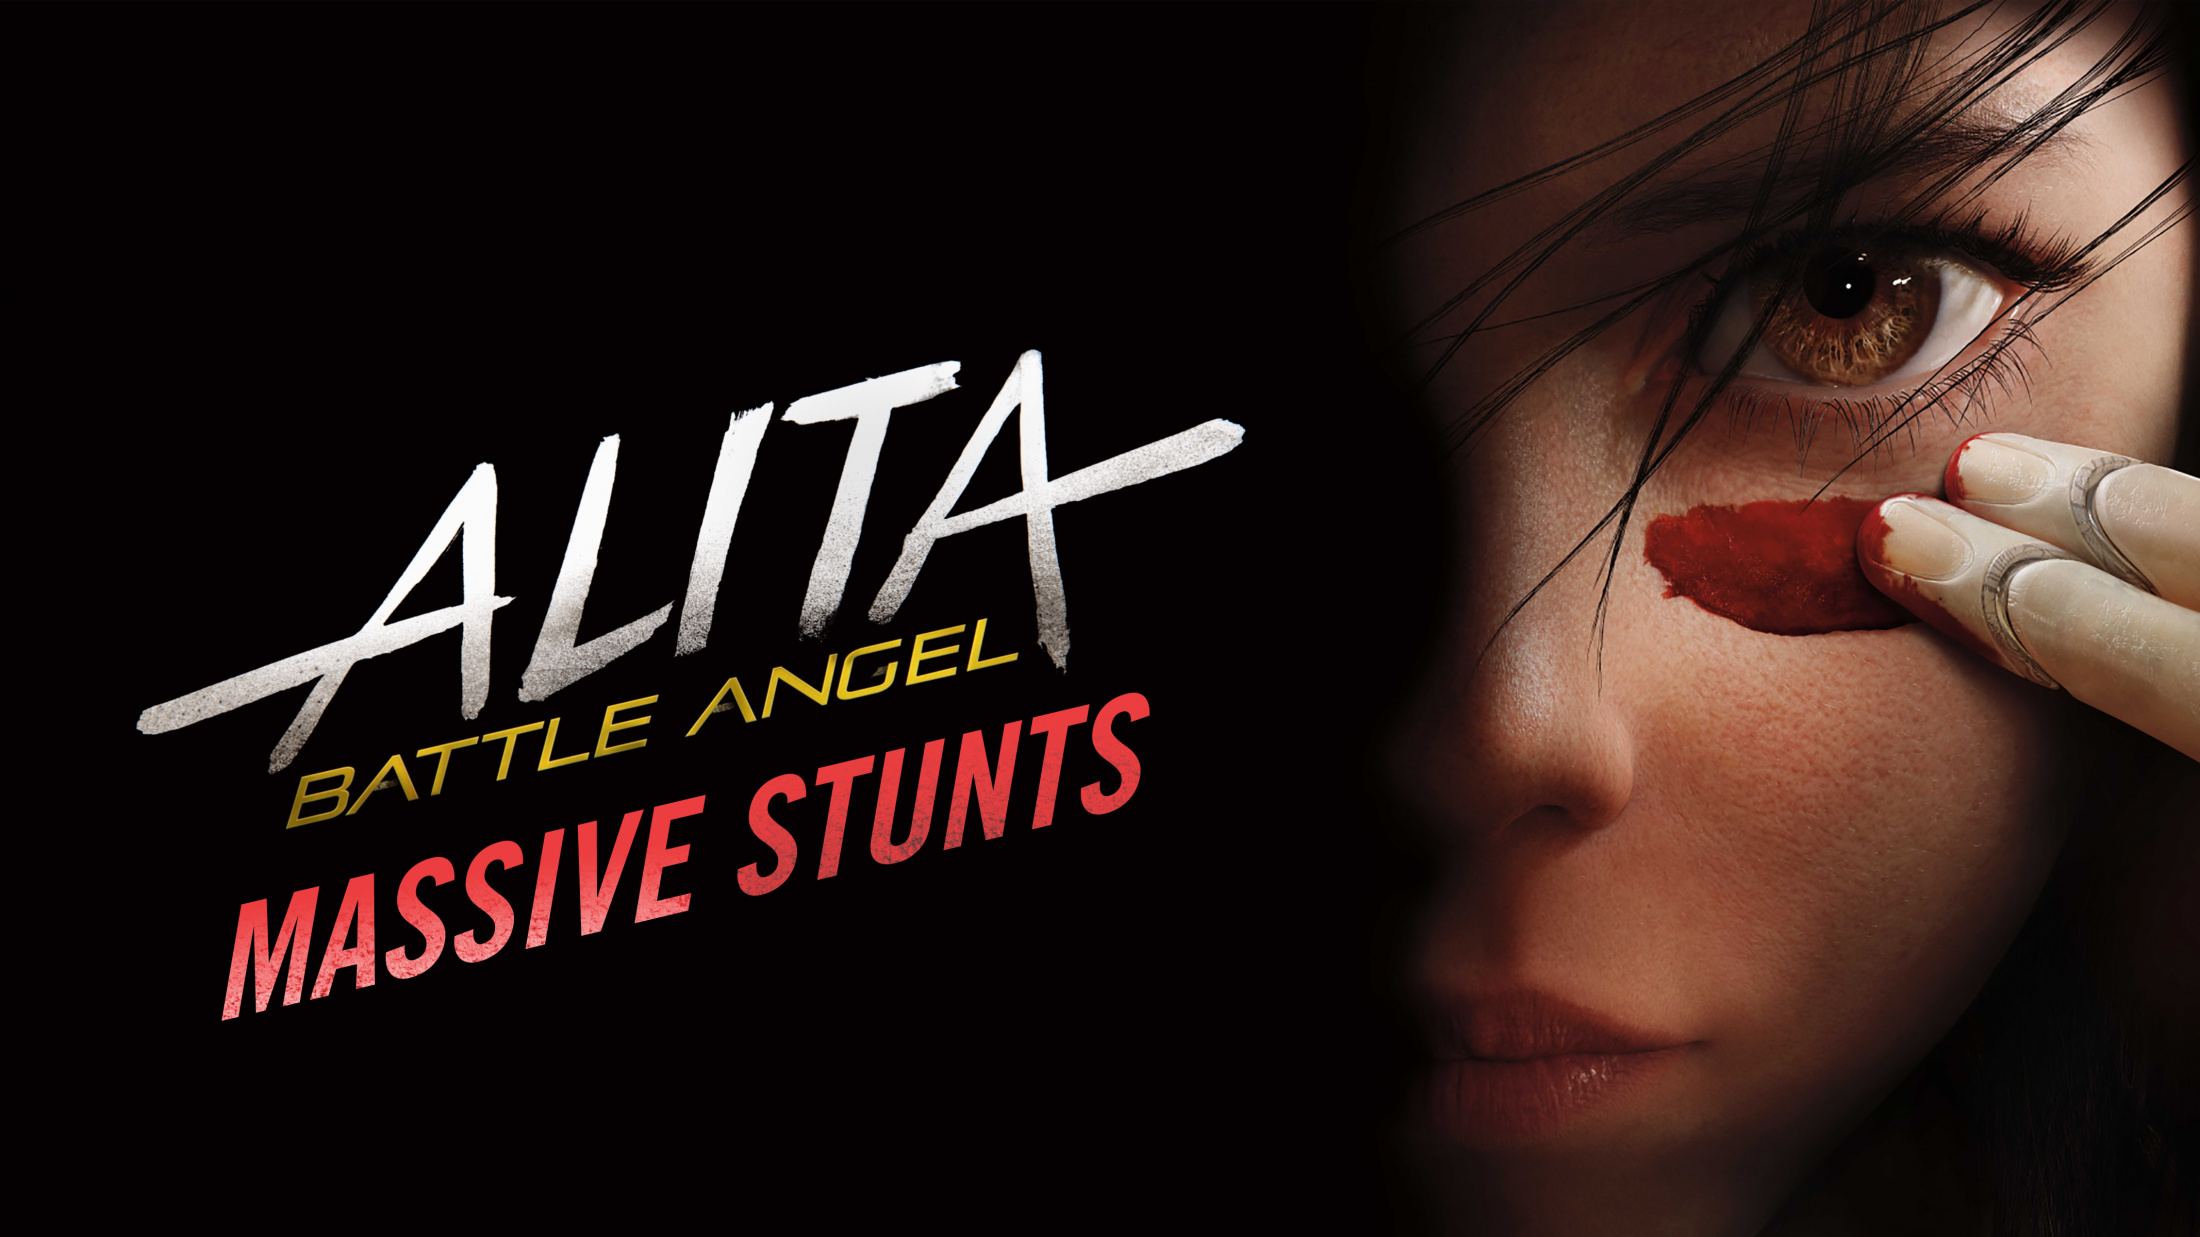 Thumbnail for ALITA BATTLE ANGEL MASSIVE STUNTS